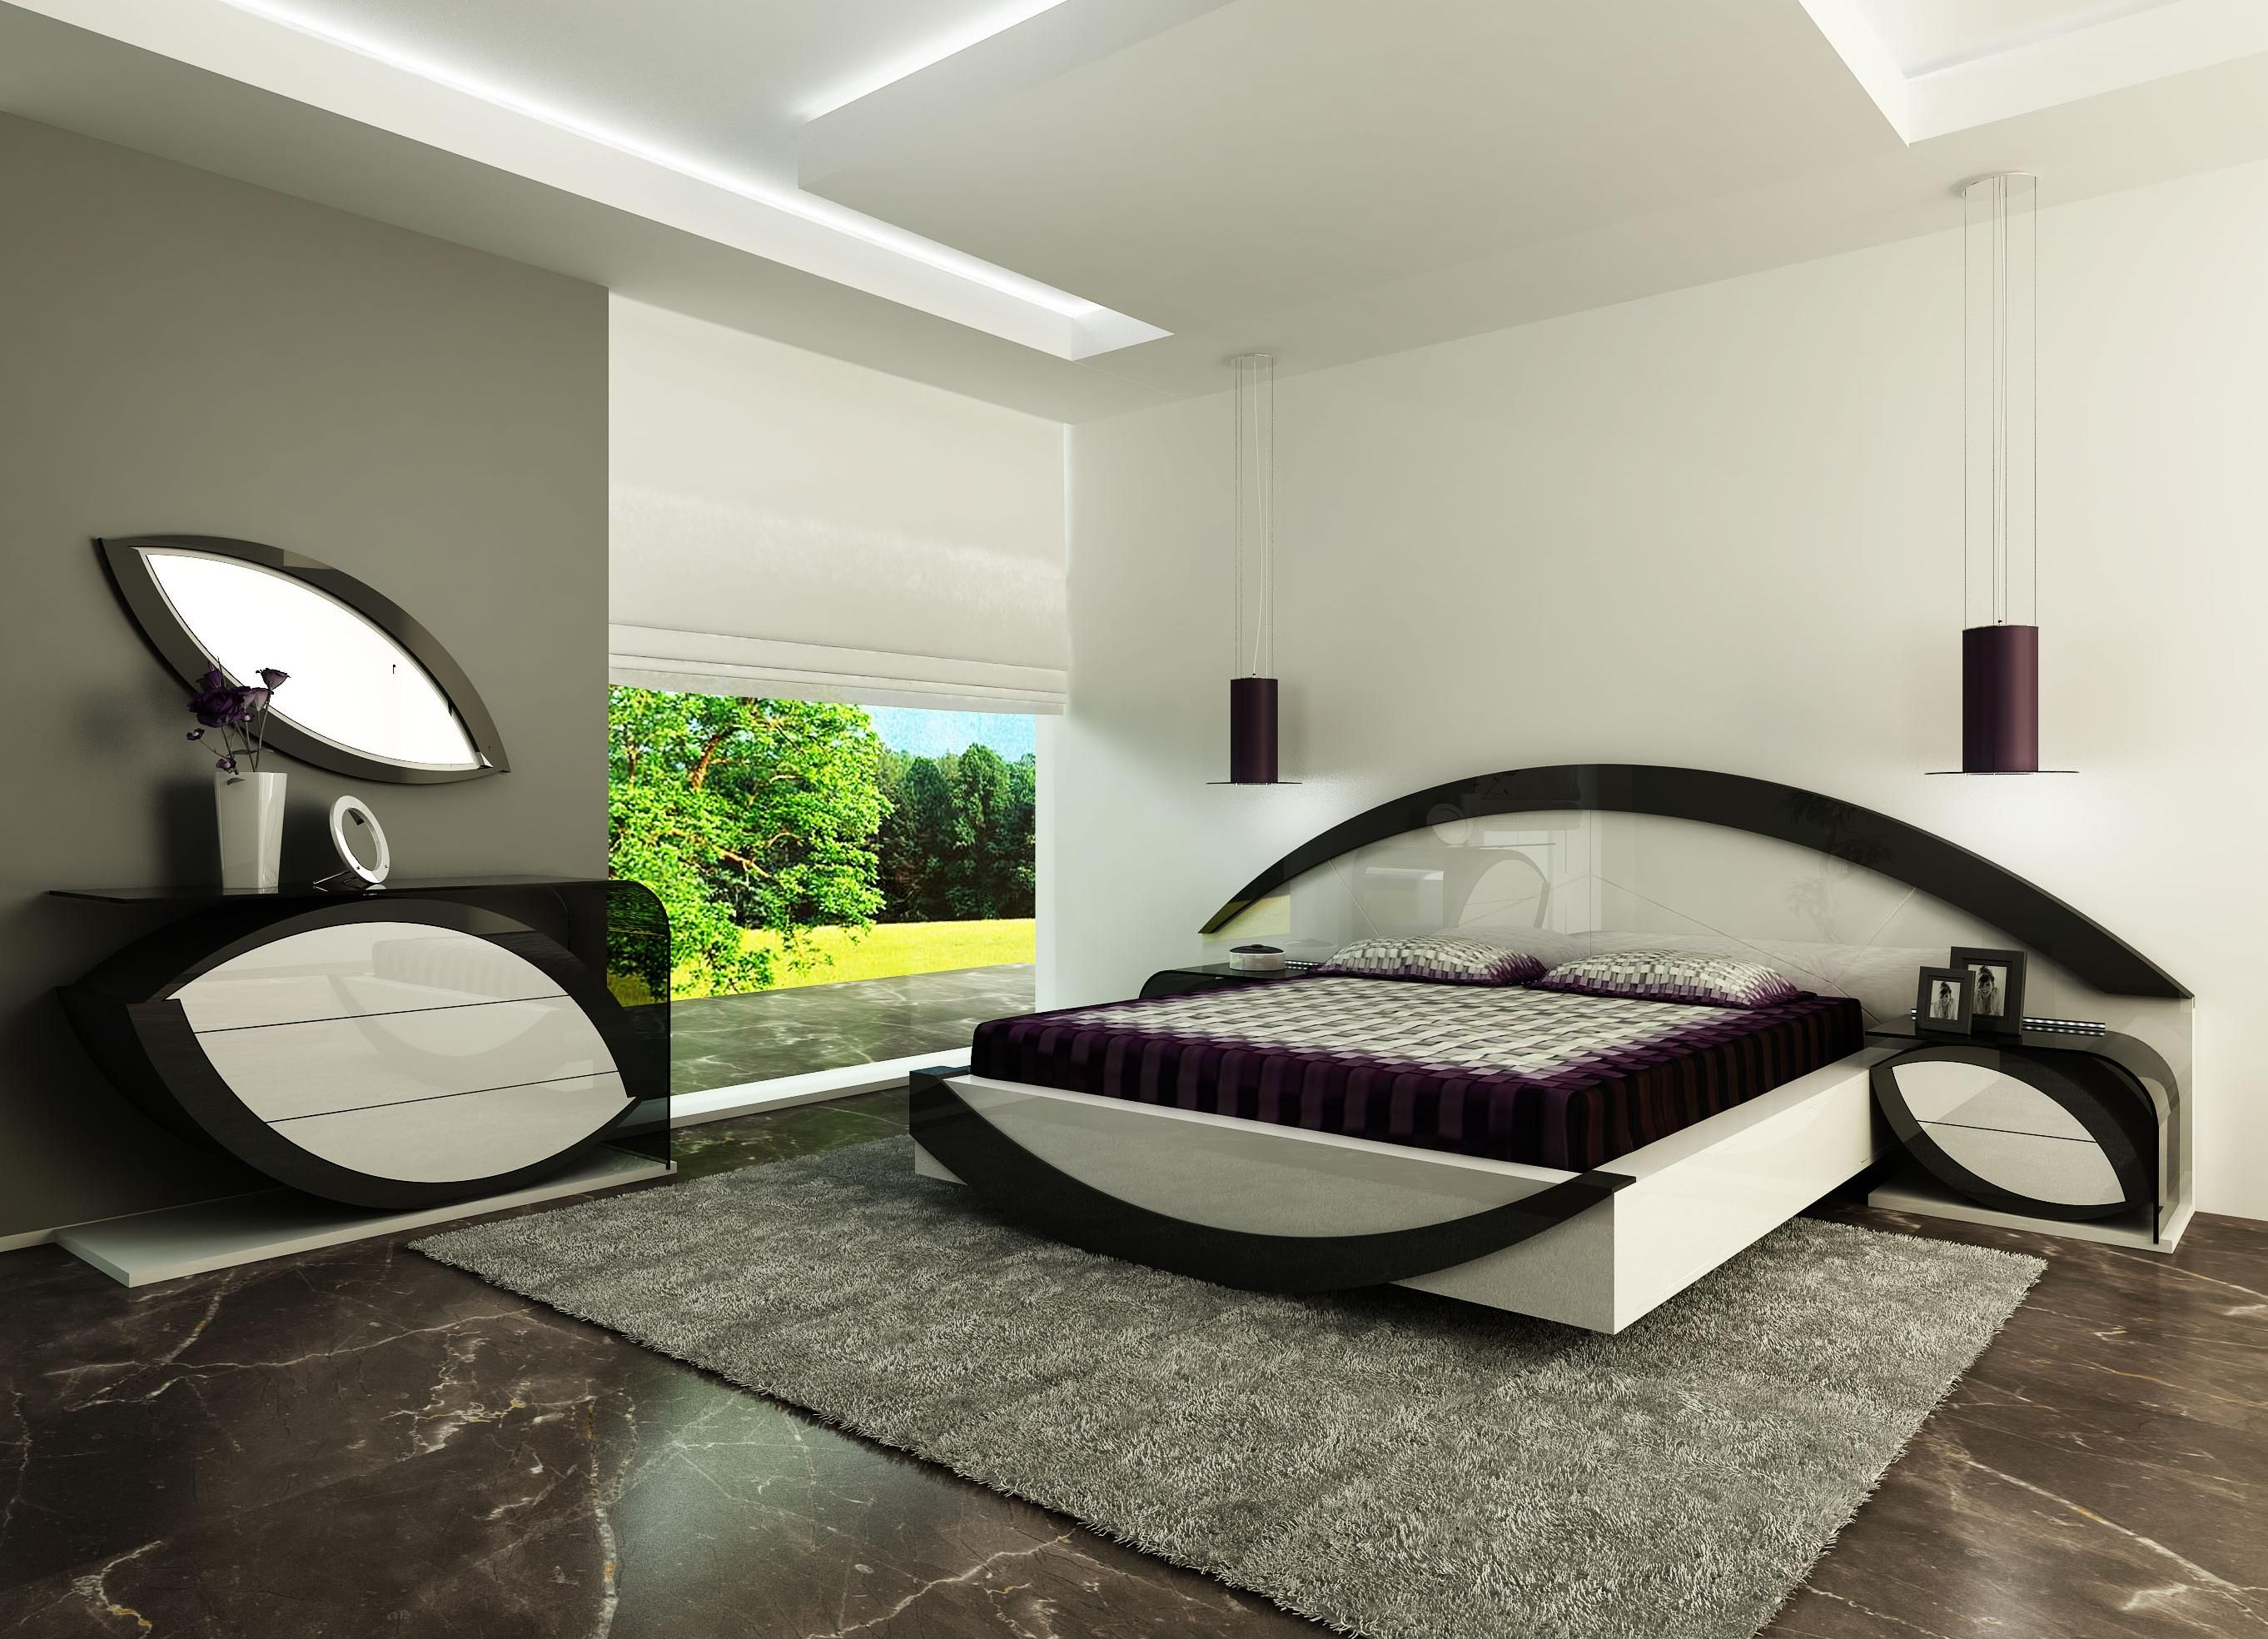 Modern Furniture For Home modern bedroom furniture designs best 25+ modern bedroom furniture